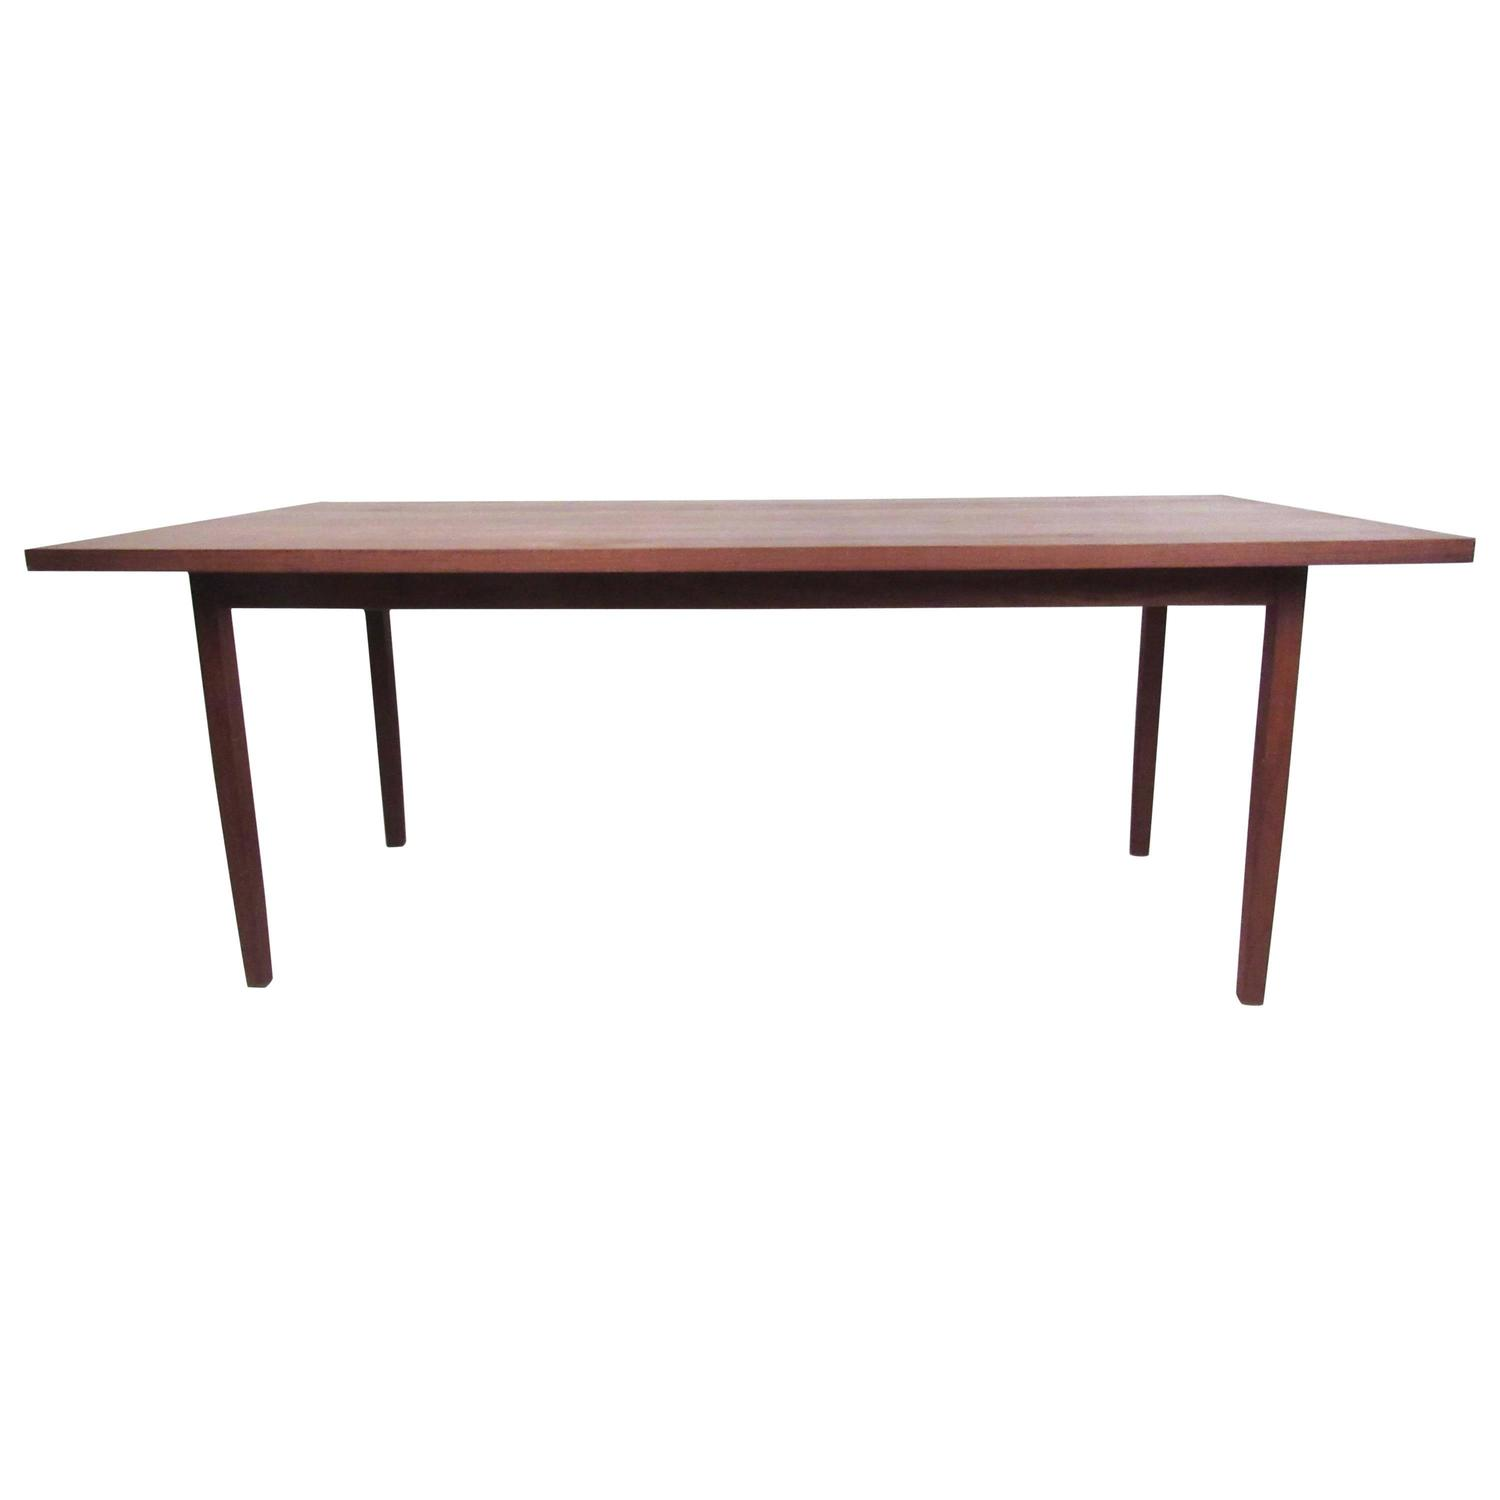 walnut top dining table by knoll international for sale at 1stdibs